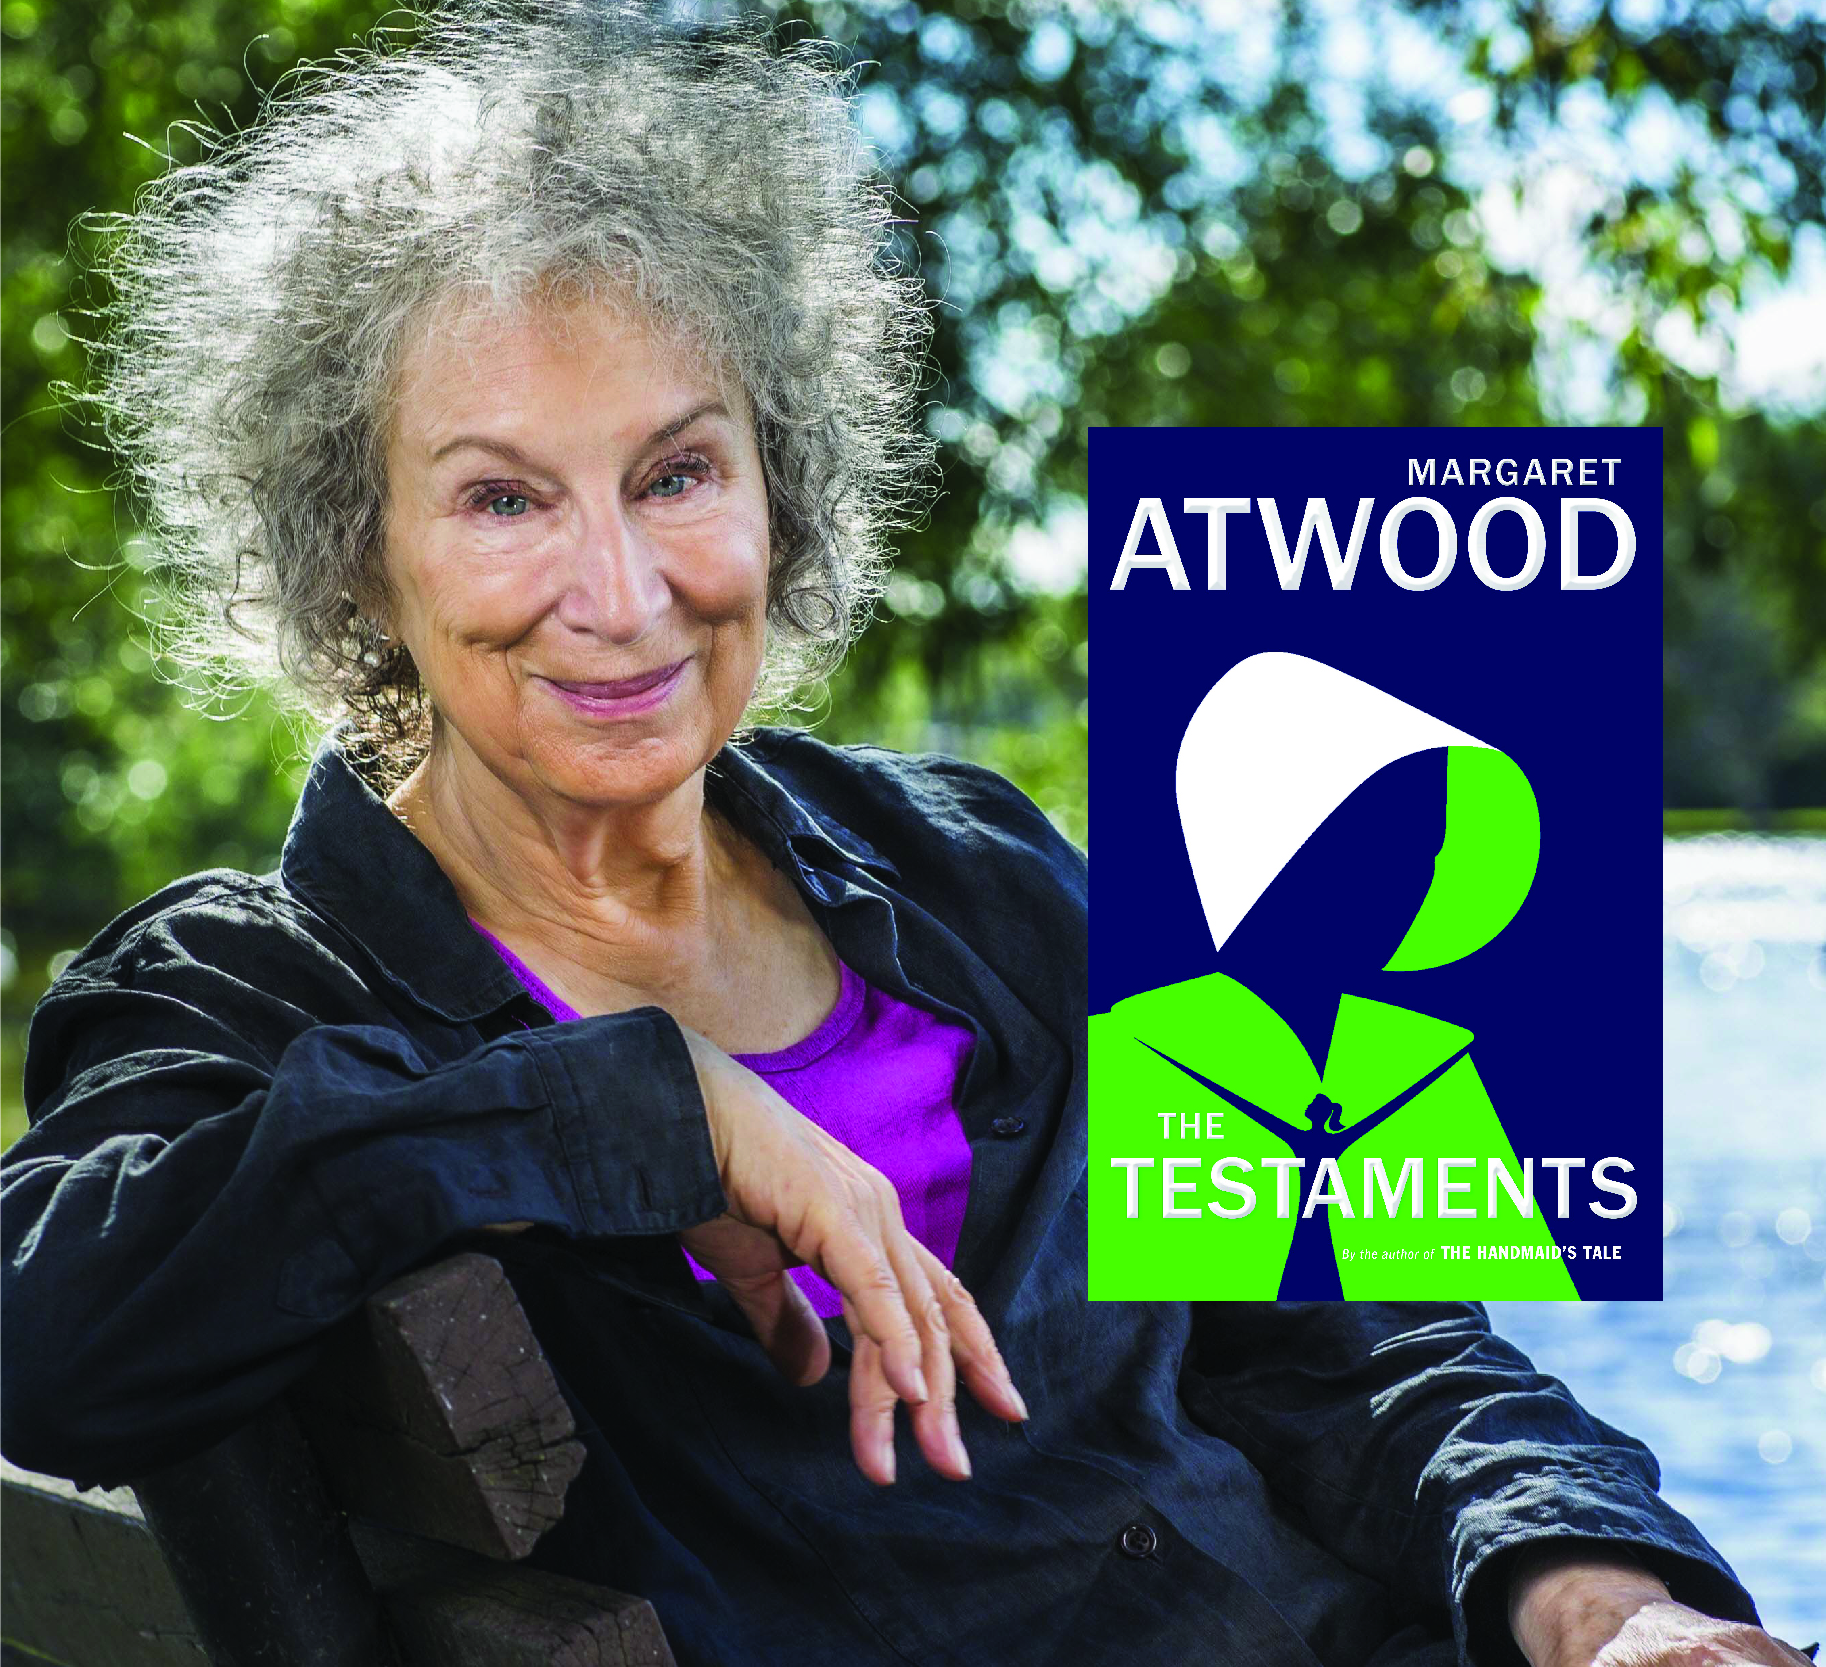 Margaret Atwood in Conversation with Omar El Akkad